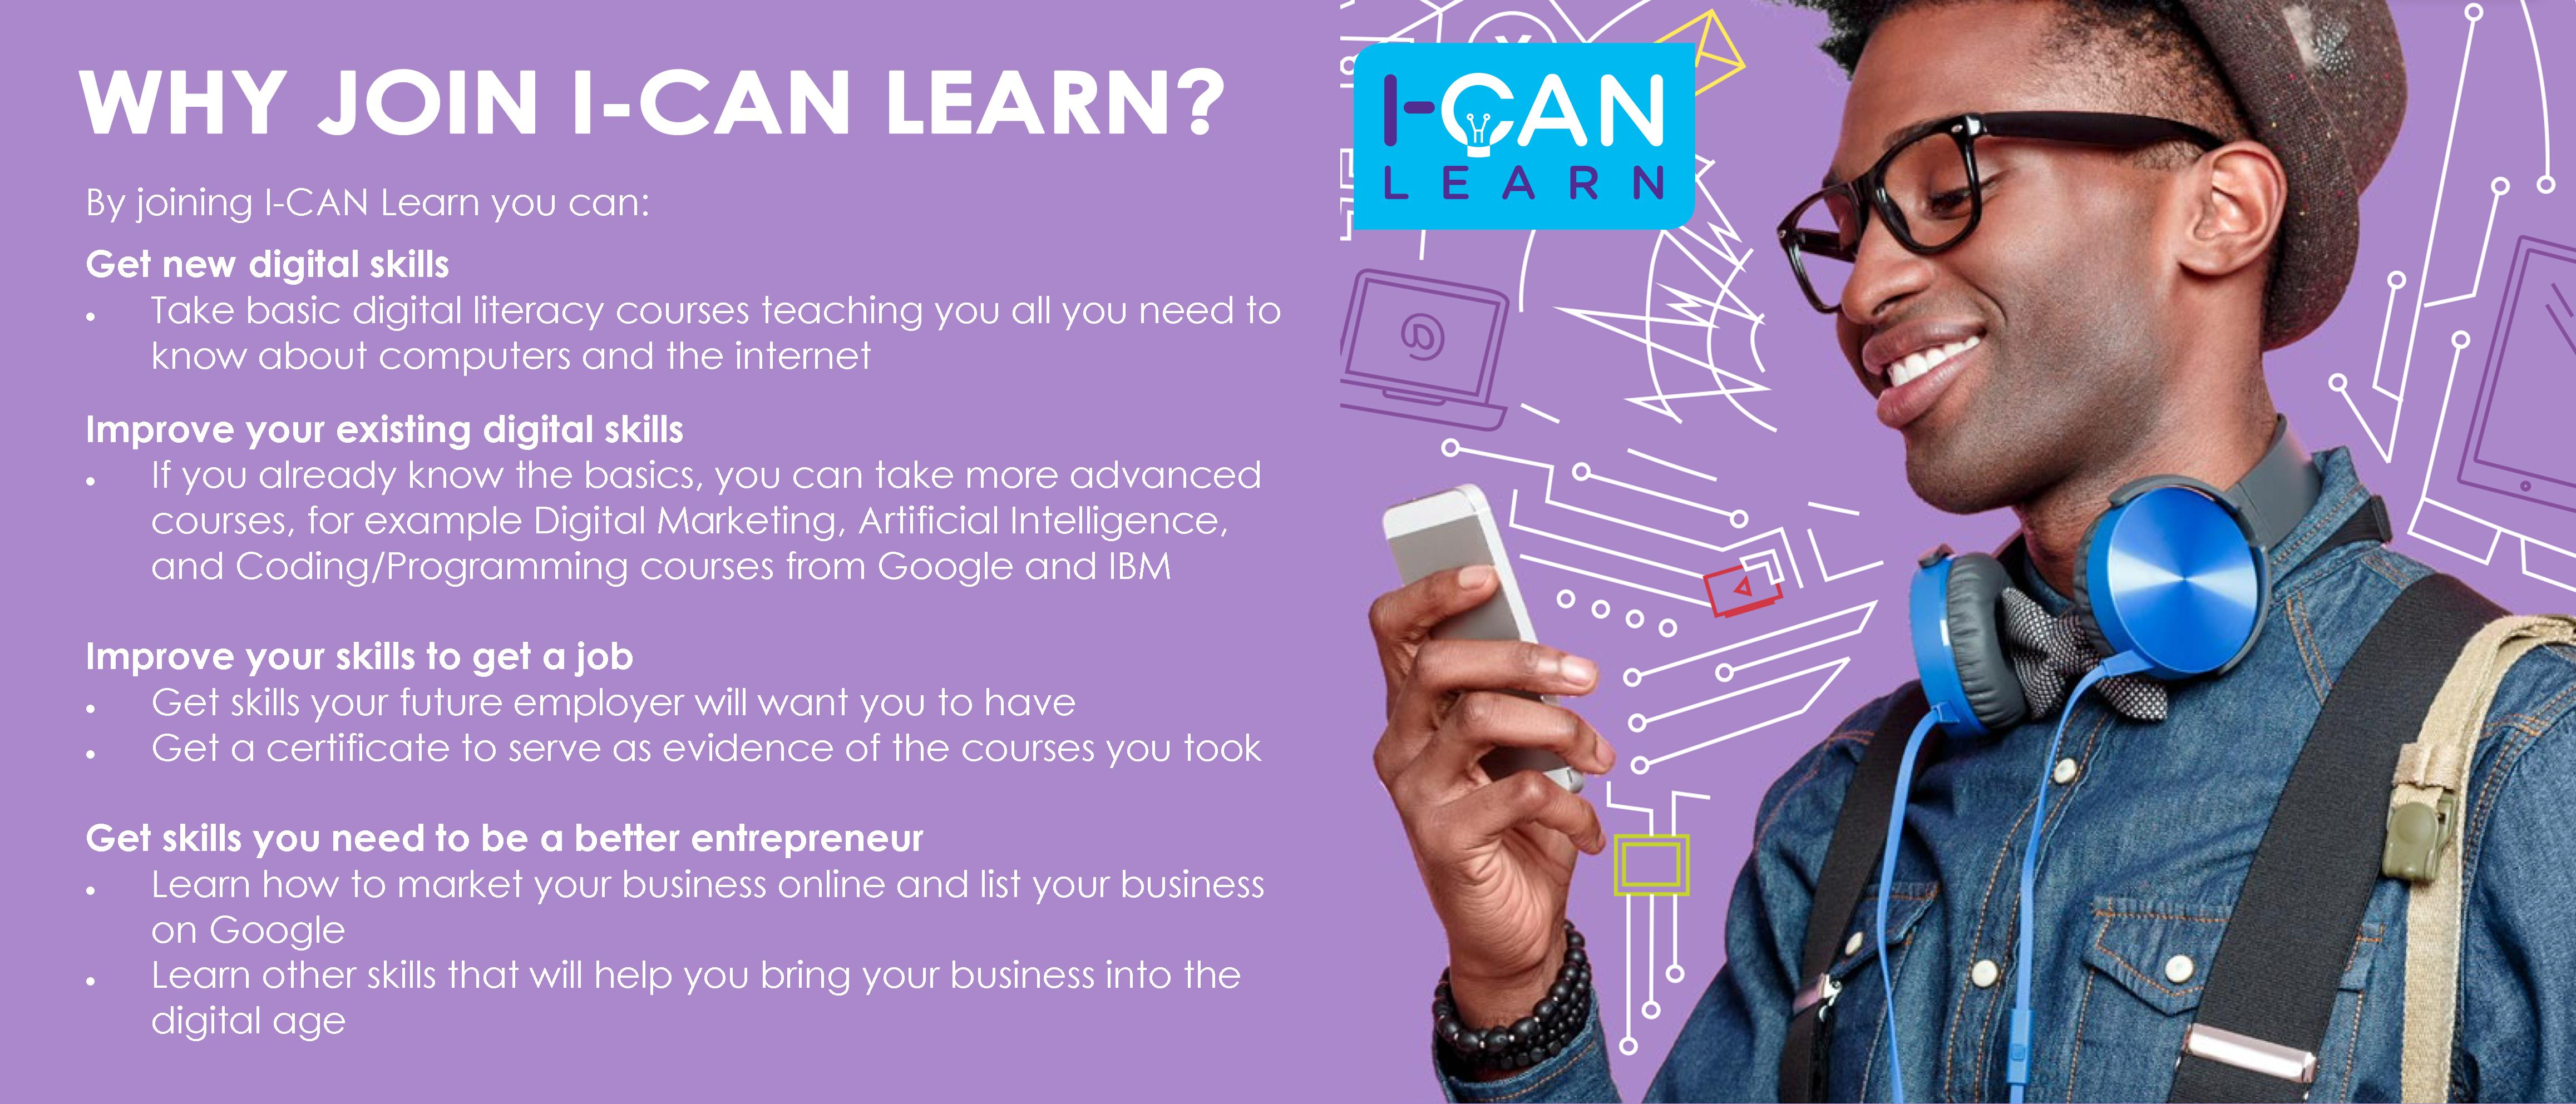 I-CAN LEARN picture 4